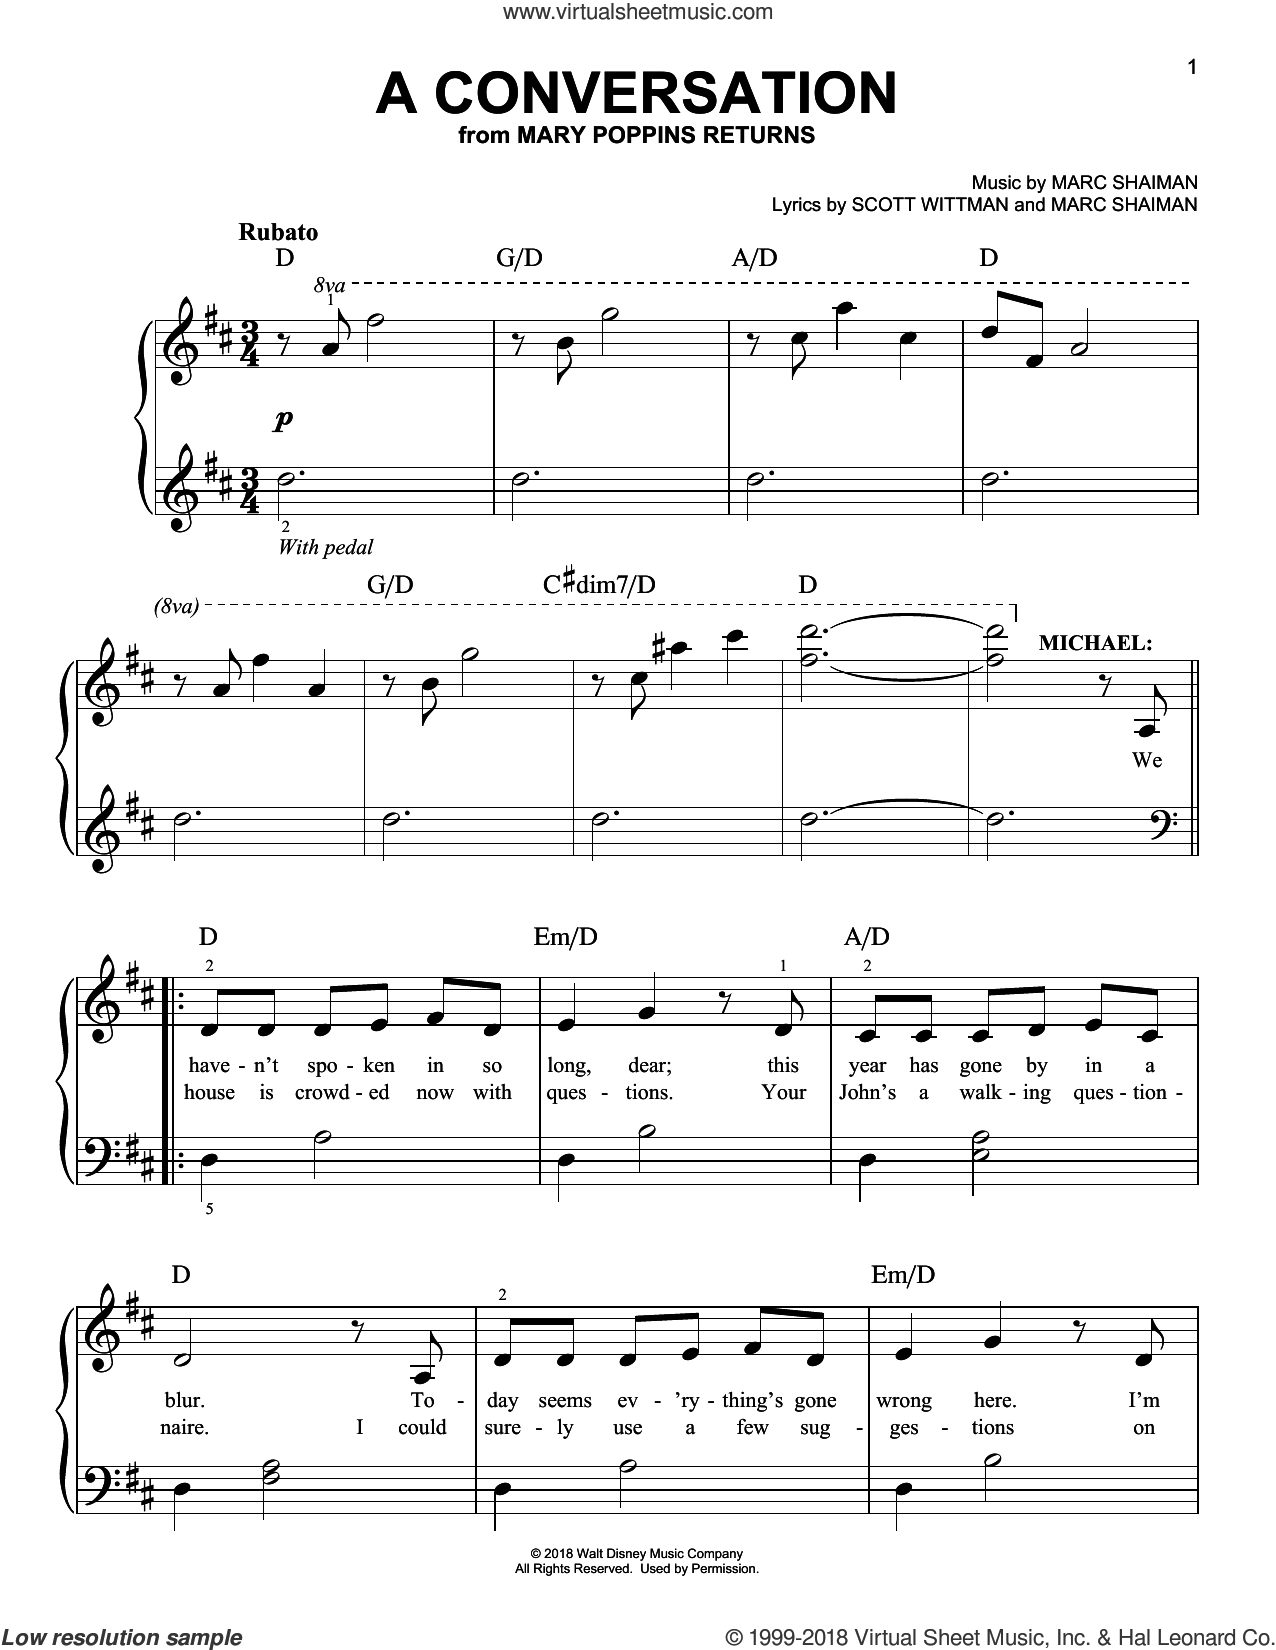 A Conversation (from Mary Poppins Returns) sheet music for piano solo by Ben Whishaw, Marc Shaiman and Scott Wittman, easy skill level